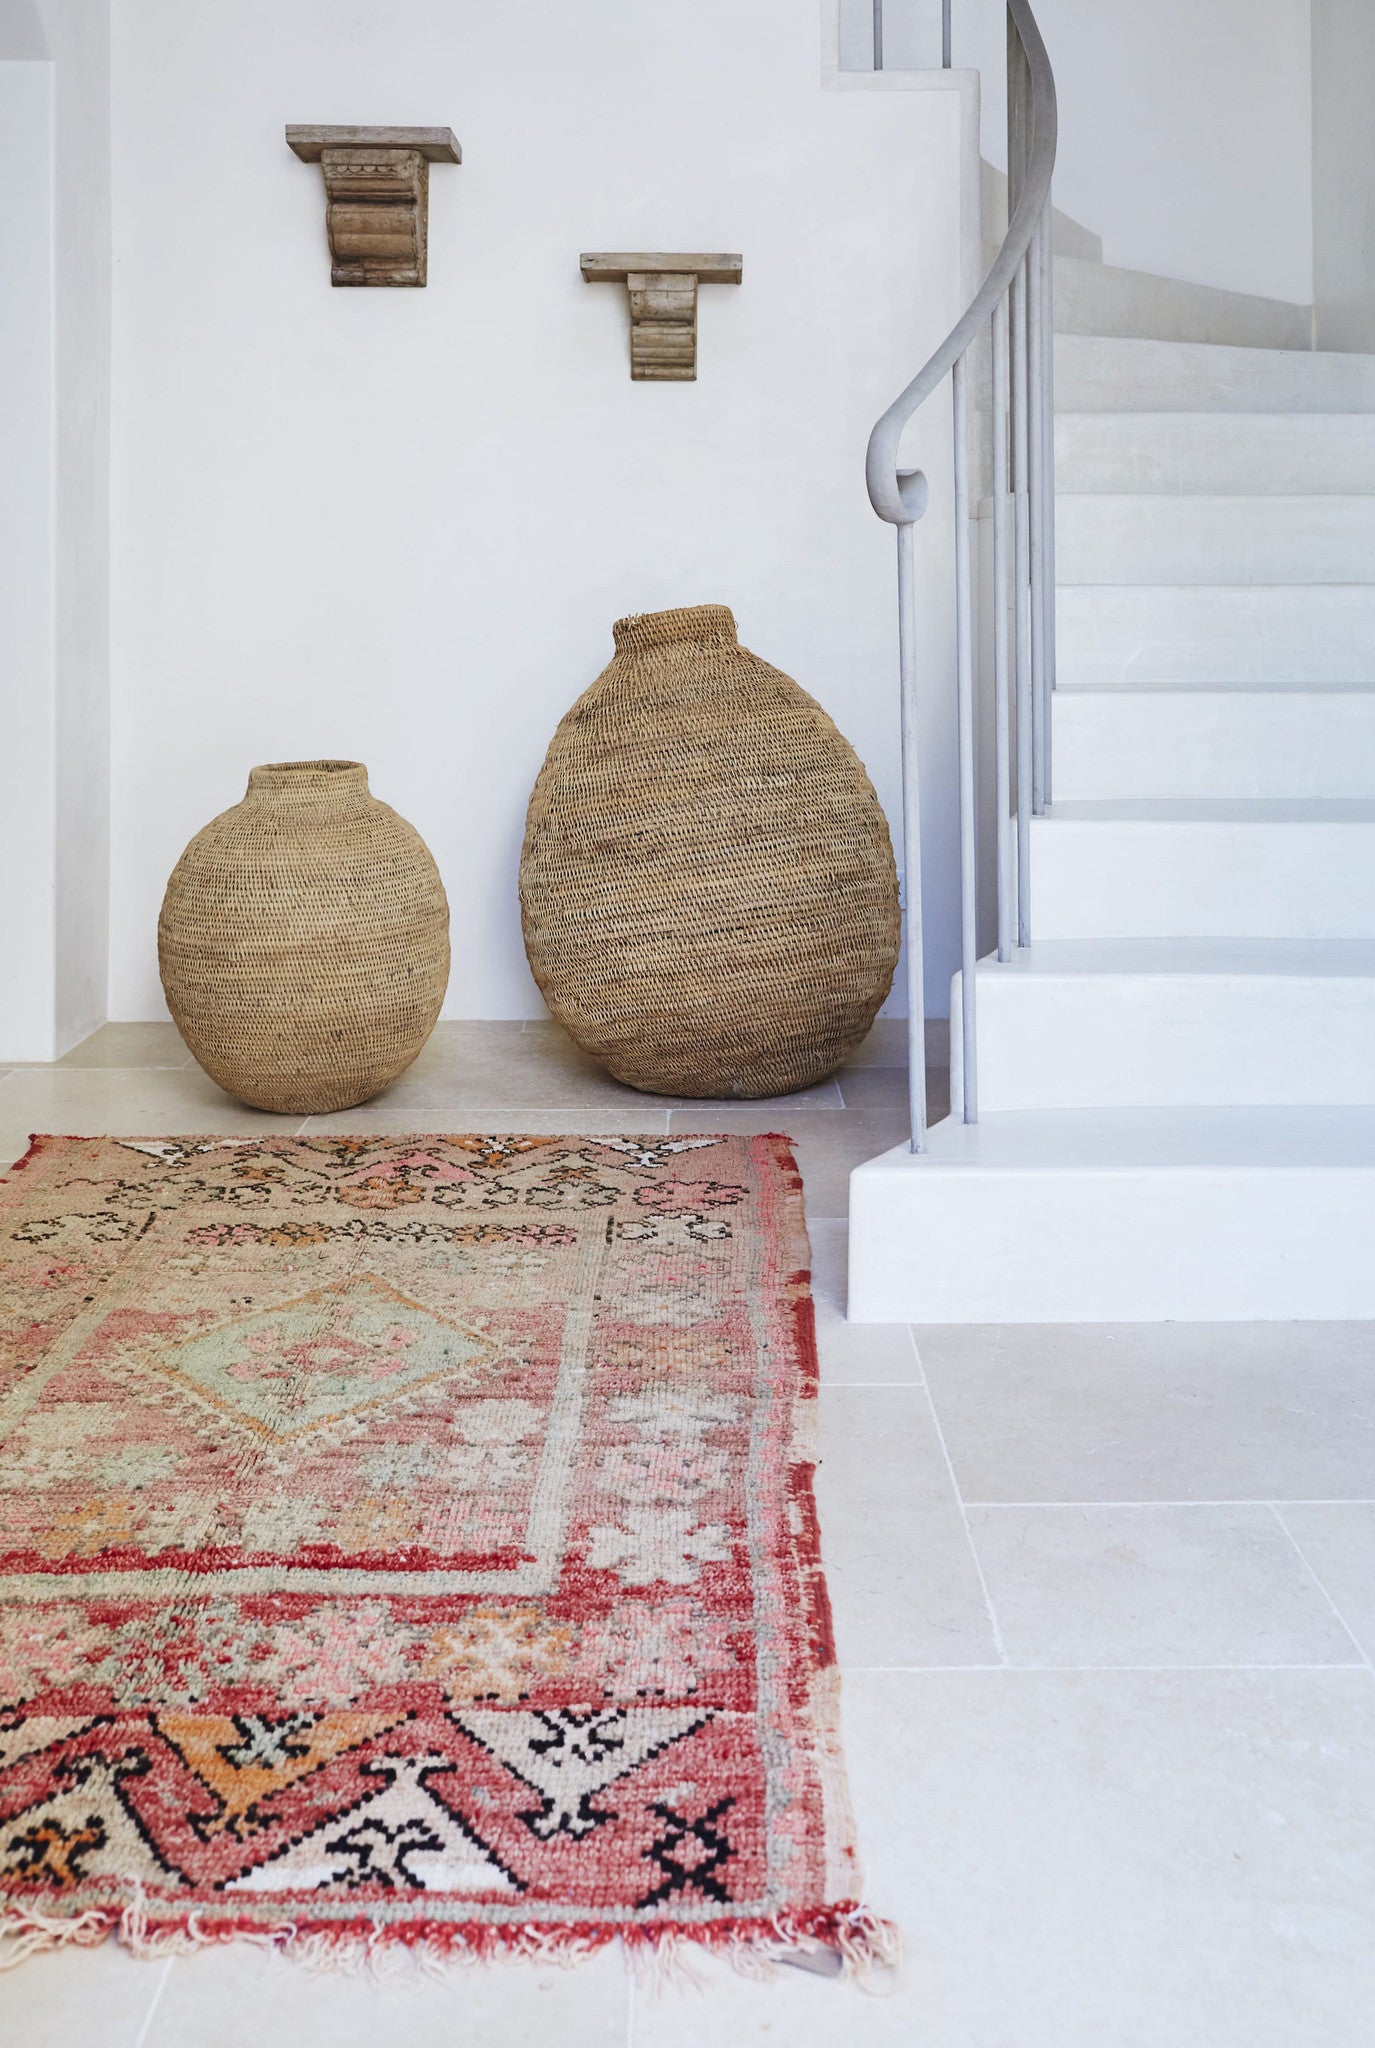 Moroccan Rugs and Basket Byron Bay